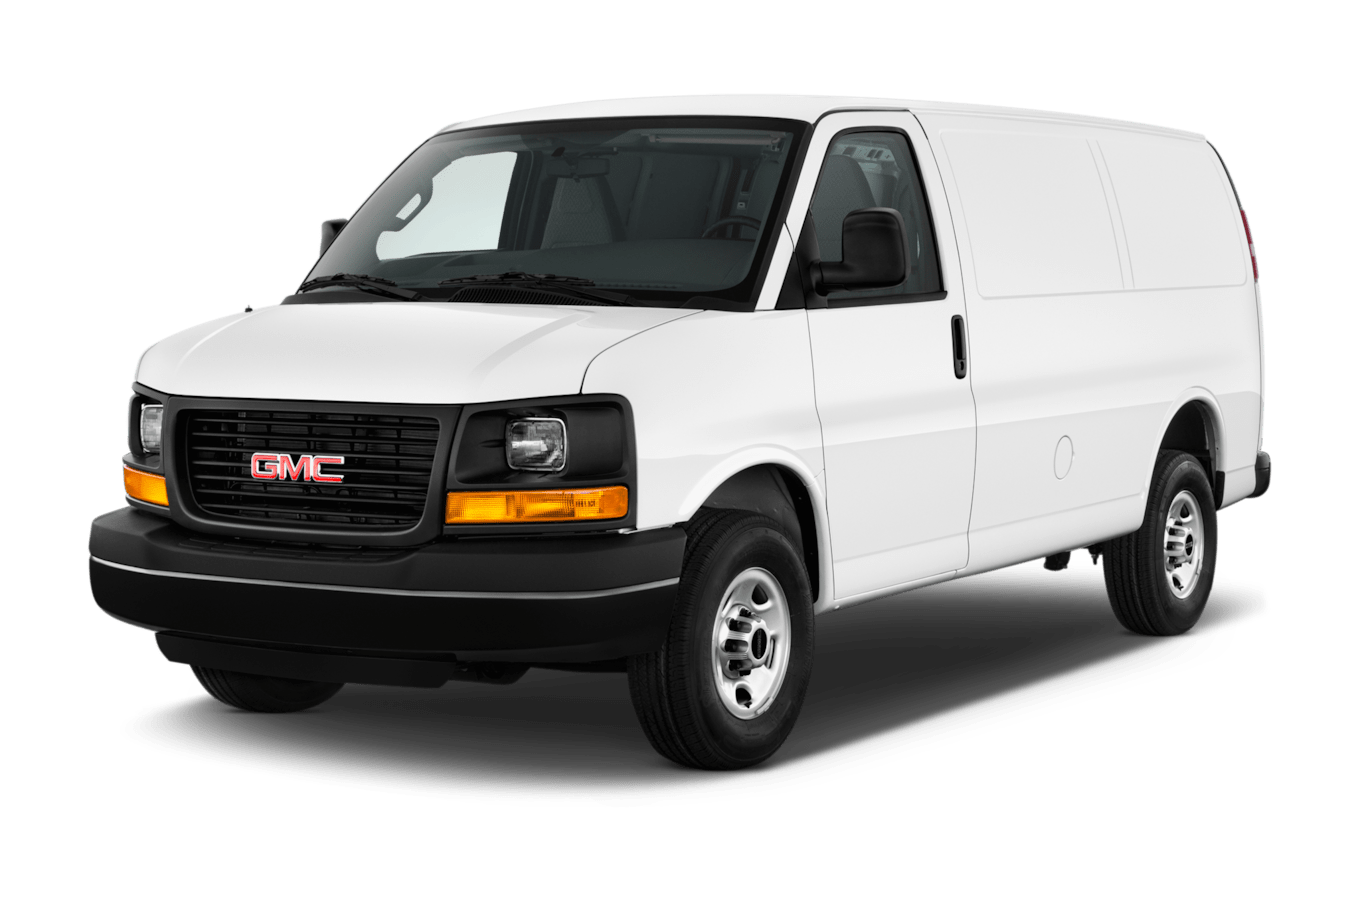 gmc savana trailer wiring diagram blank eye to fill in 2015 van wireing 39